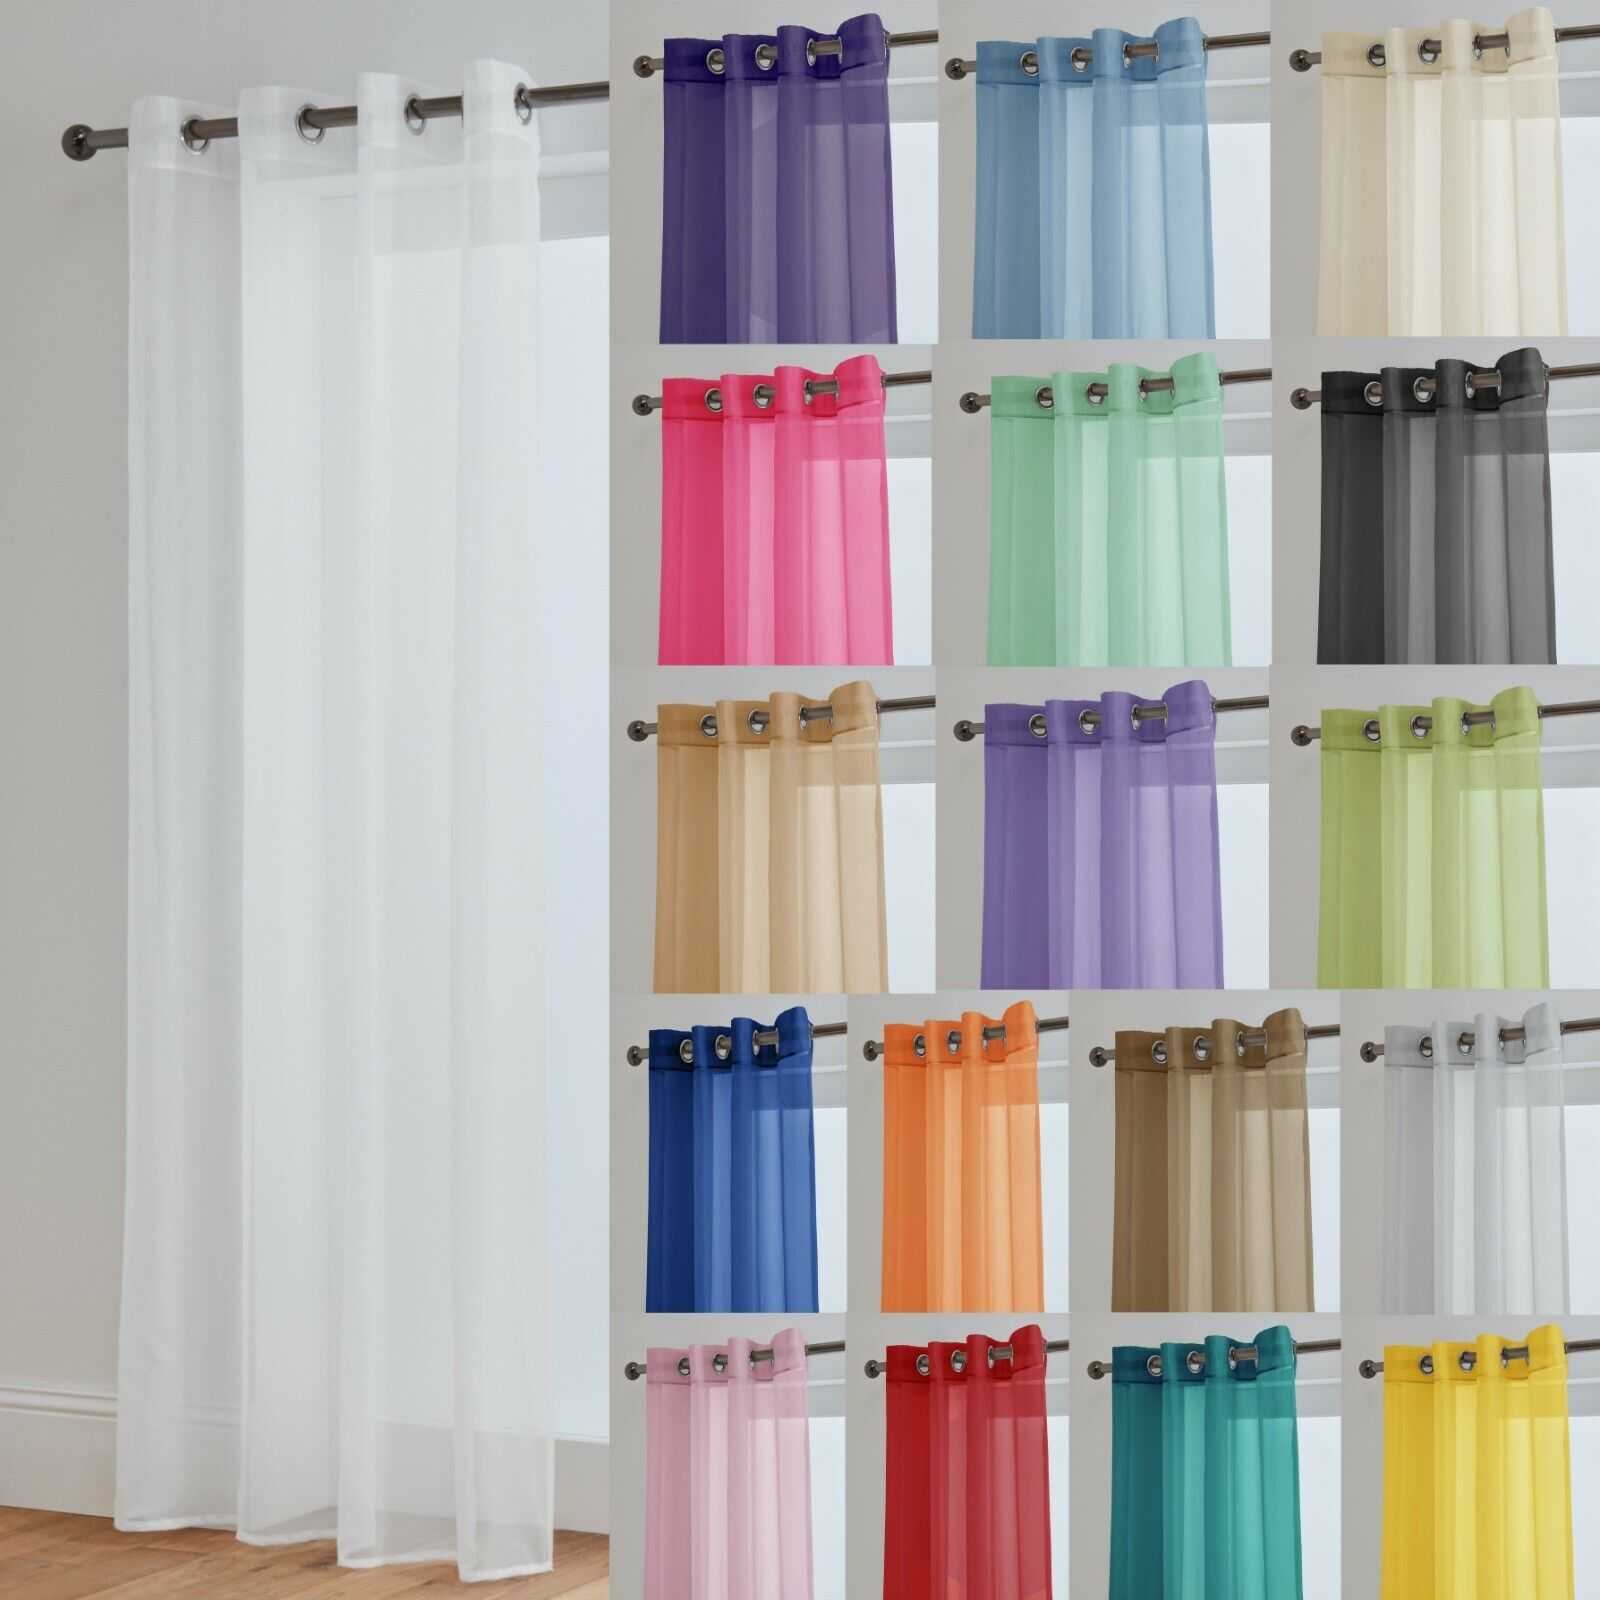 curtains - Voile Curtains With Eyelet Ring Top Heading - Net Voile Curtain - Lucy Panel